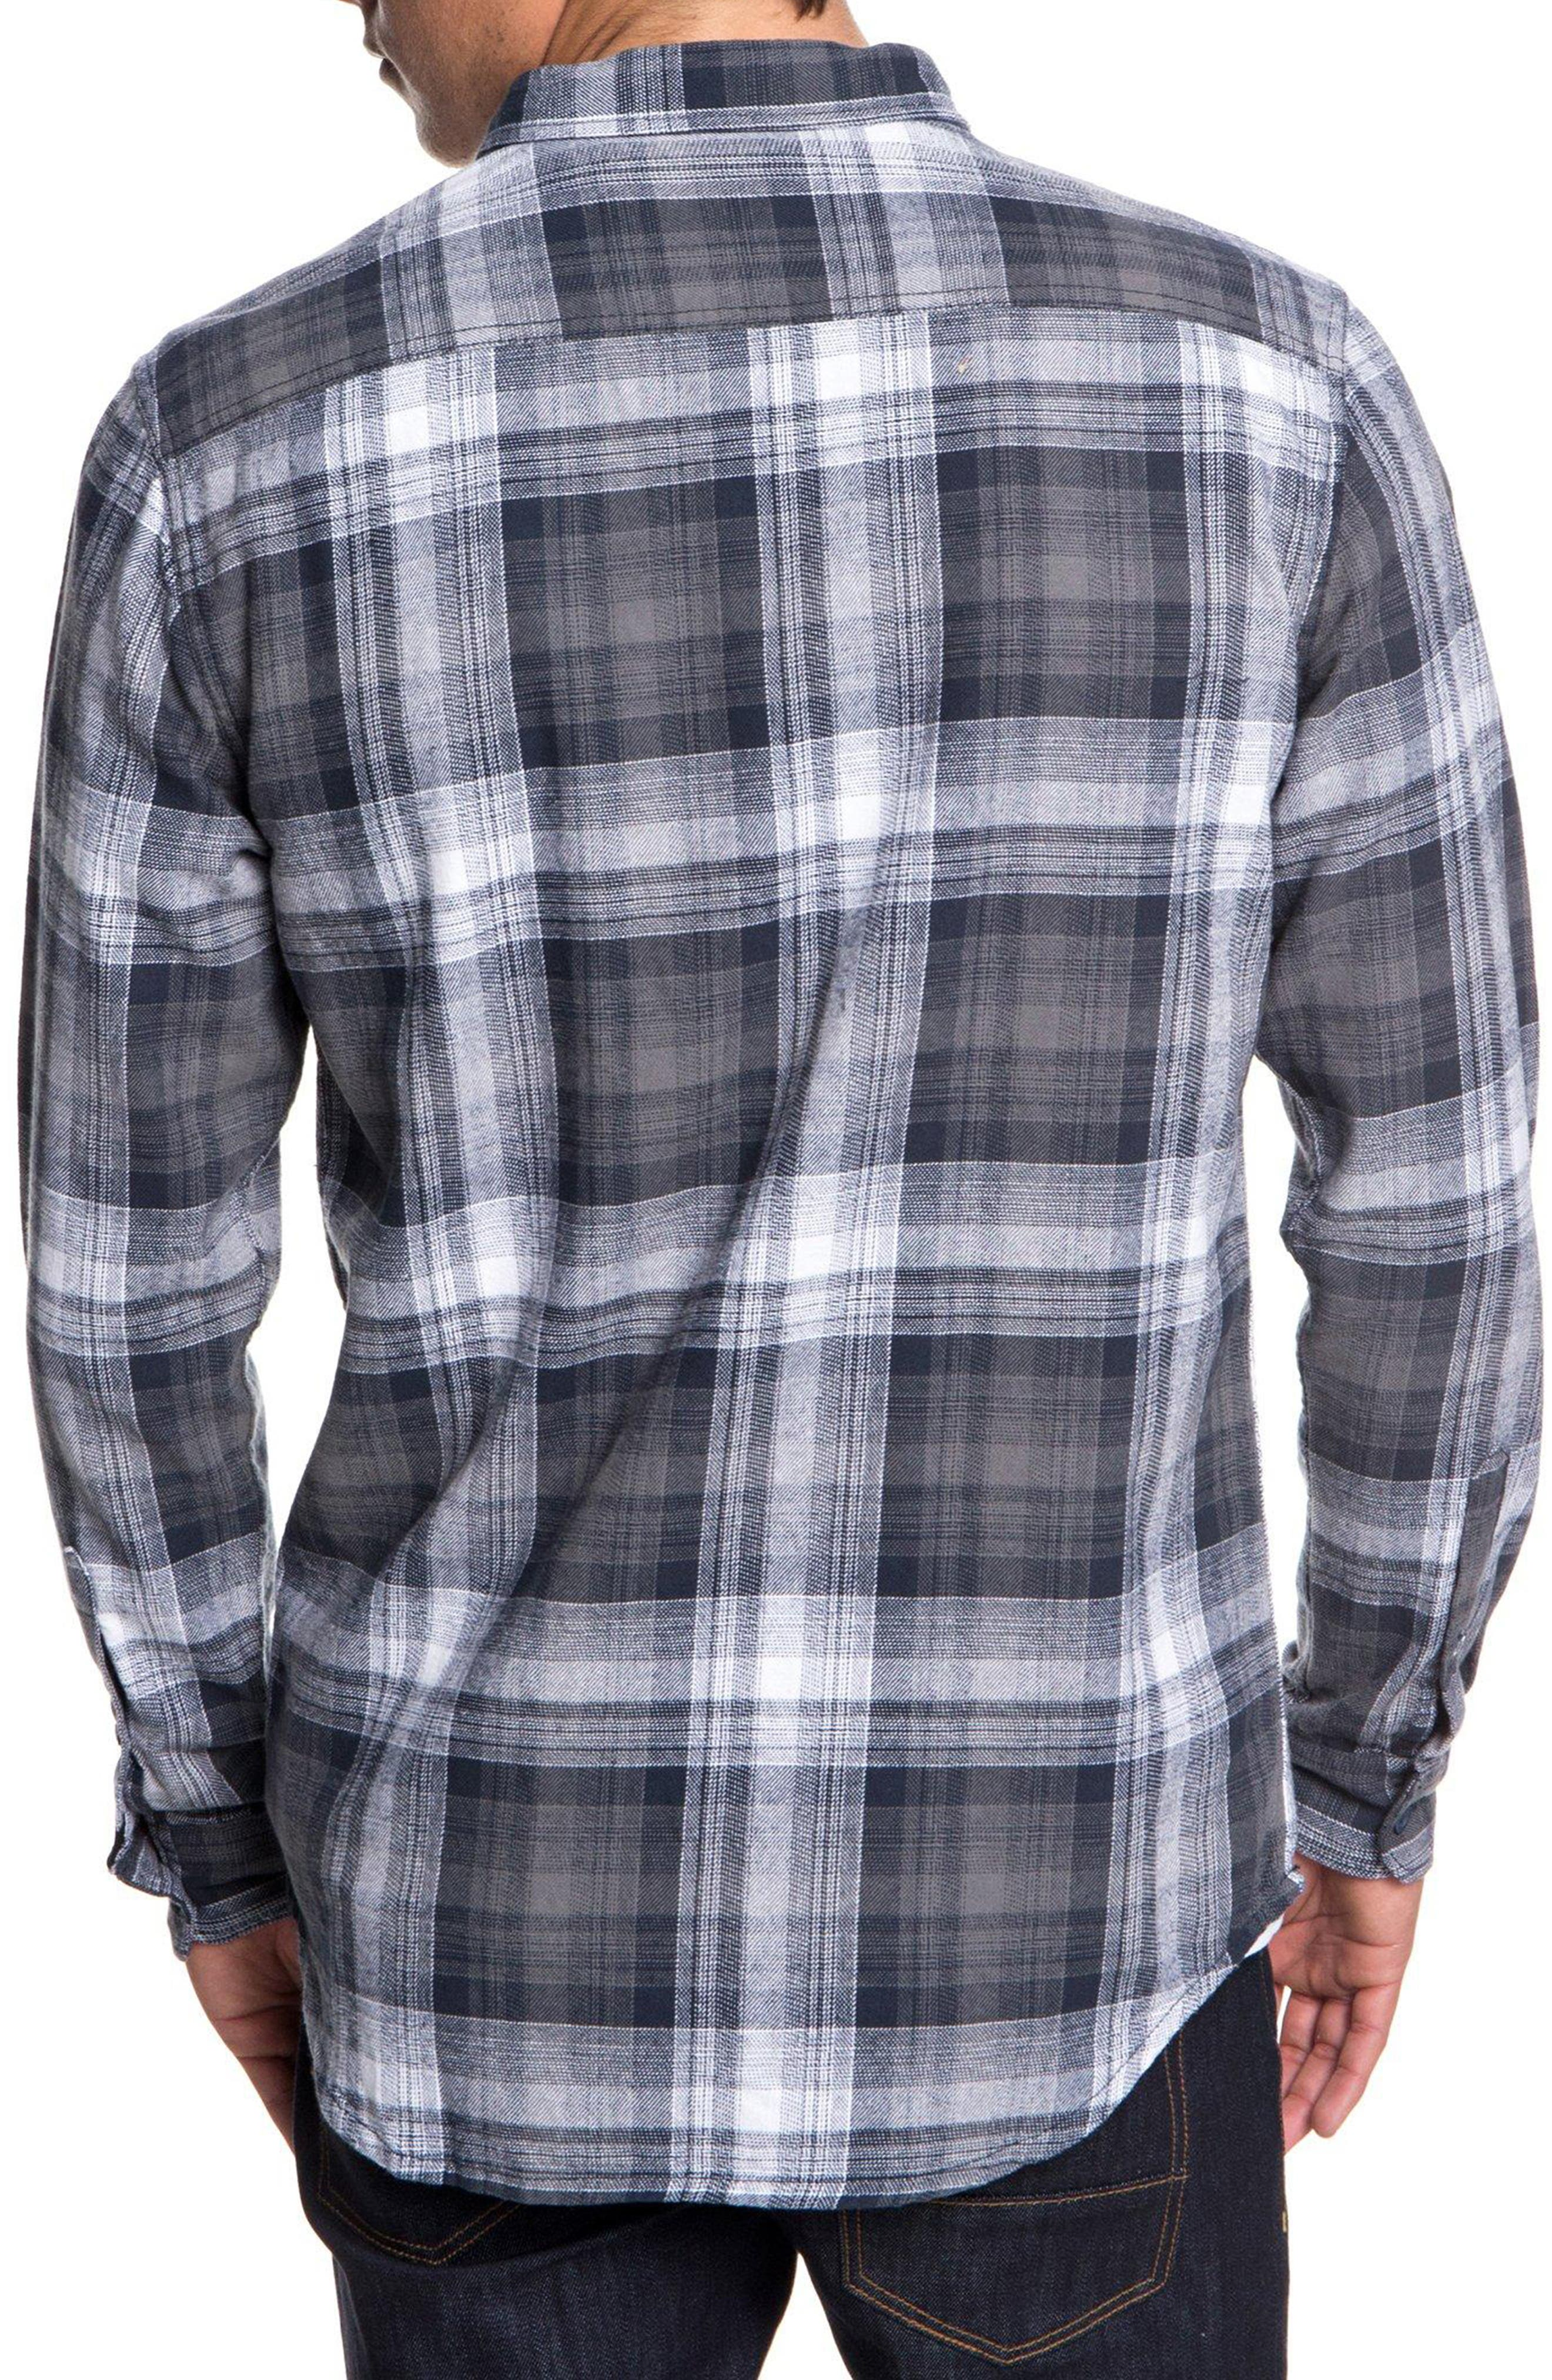 Fatherfly Plaid Shirt,                             Alternate thumbnail 2, color,                             BLUE NIGHT FATHERFLY CHECK